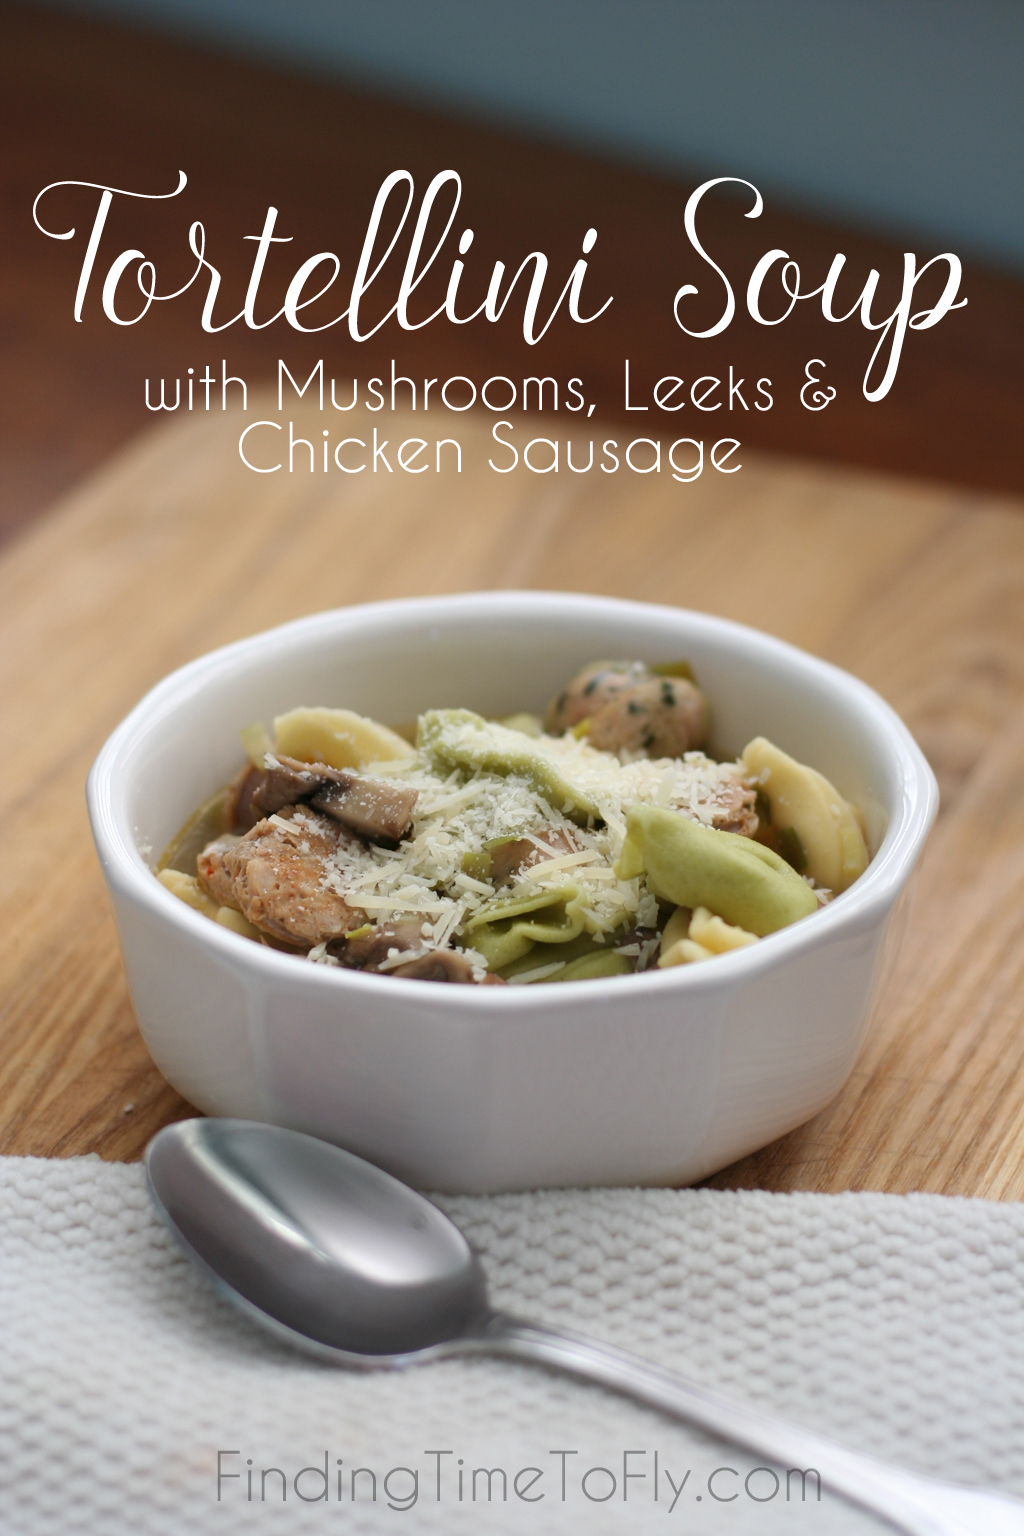 You can have this Tortellini Soup on the table in just 30 minutes!